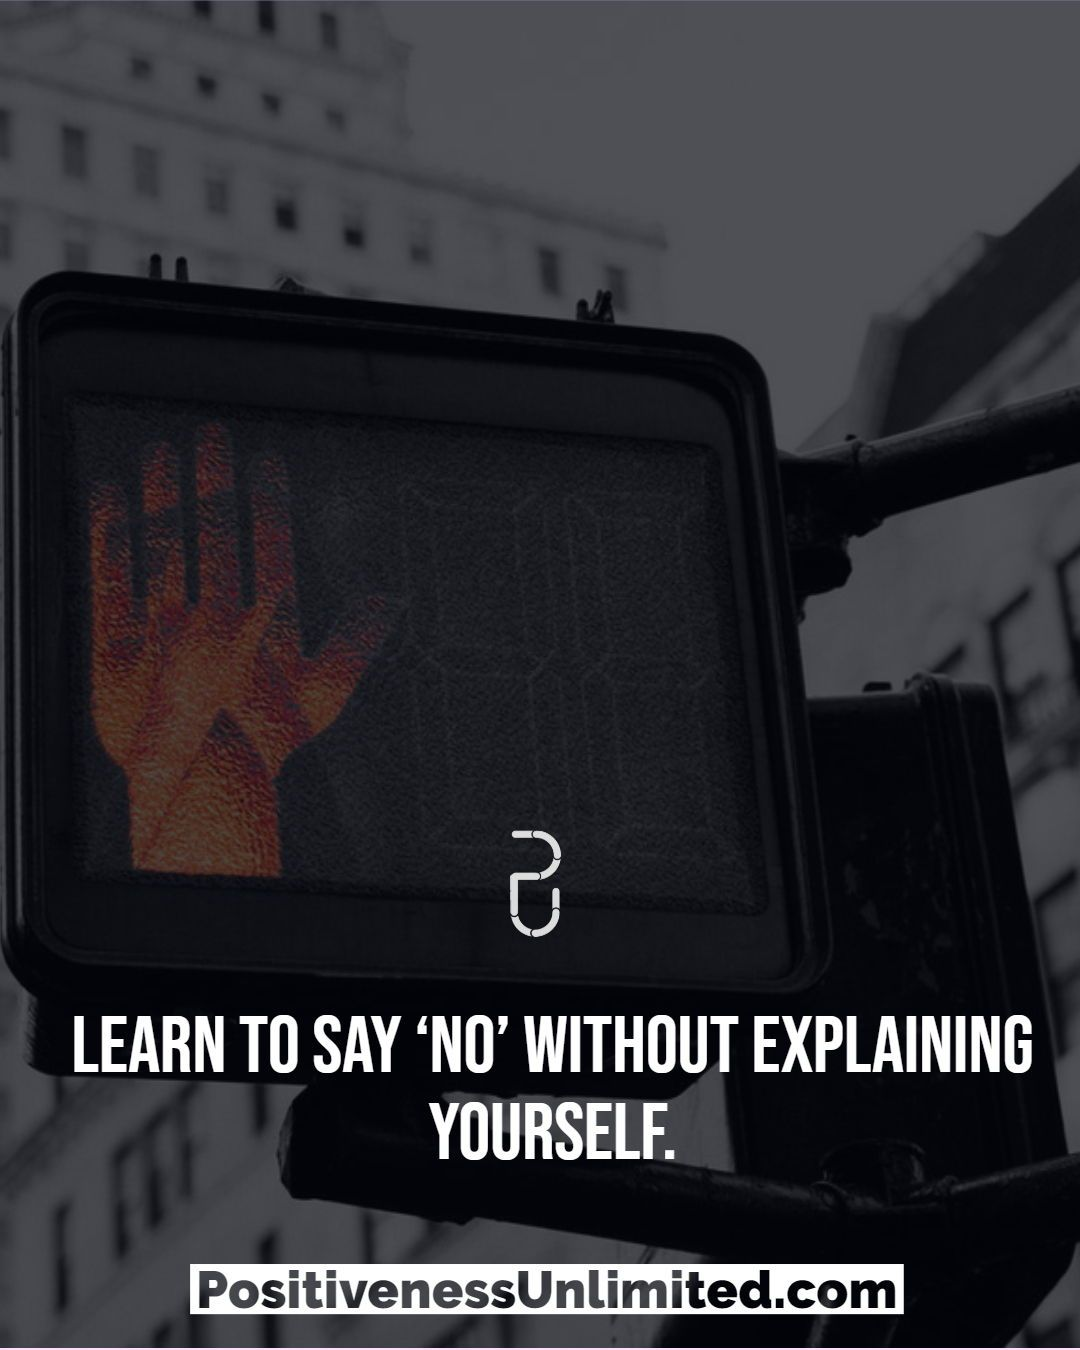 Motivational Positive Success Positiveness Unlimited Motivationalquotes Quotes Positivethought Business Quotes Inspirational Quotes Learning To Say No